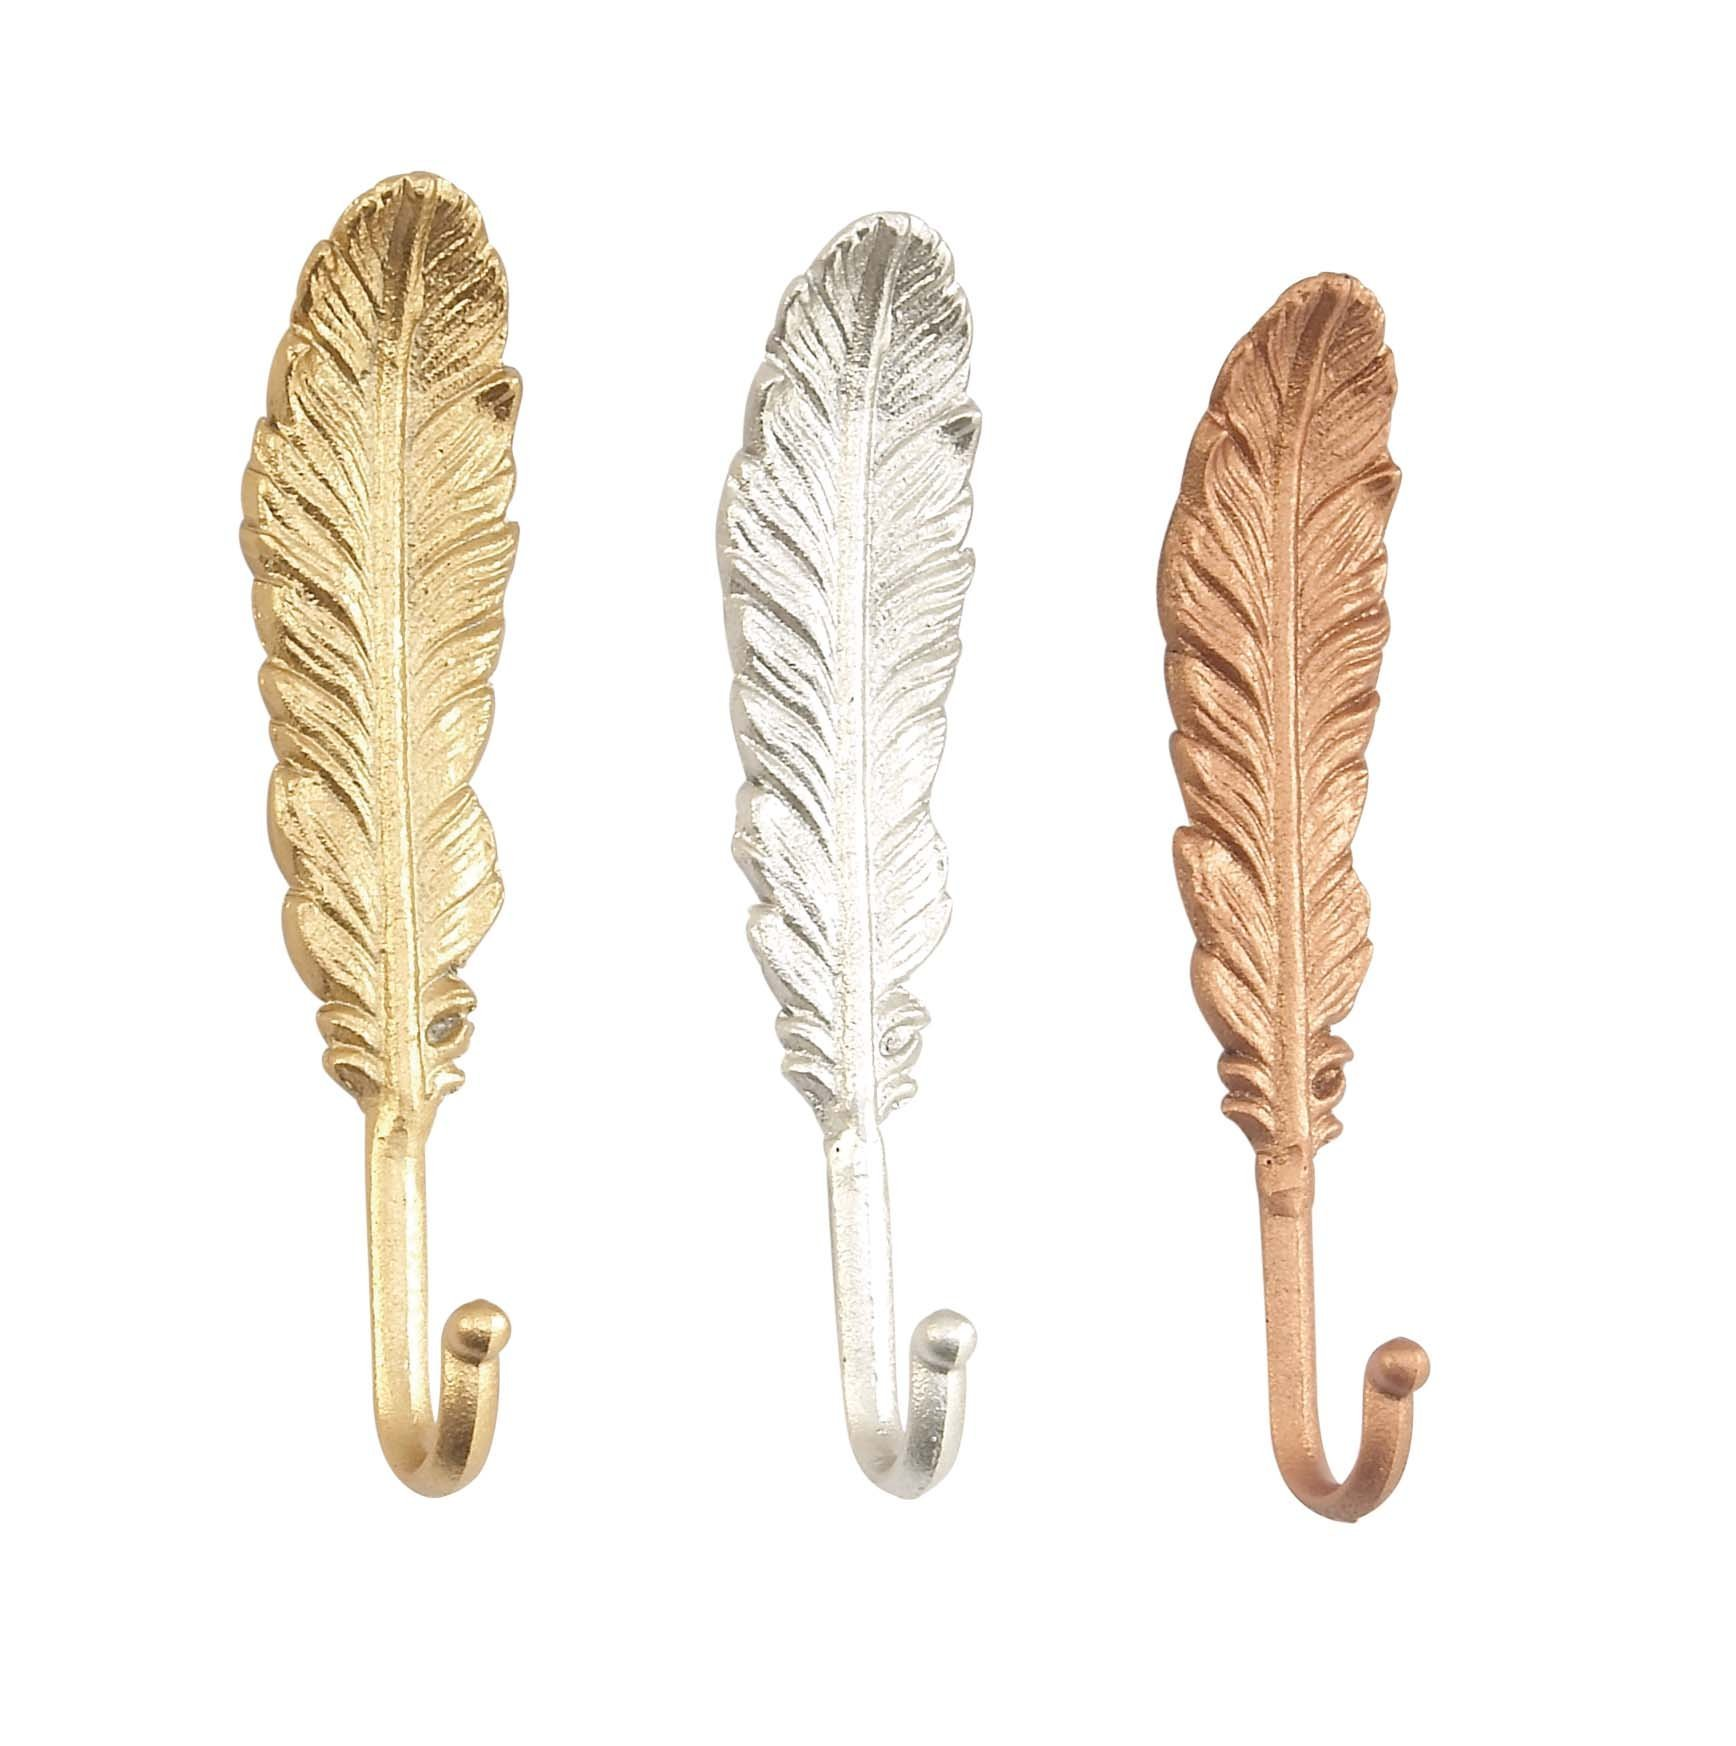 Deco 79 59419 Feather-Inspired Iron Wall Hooks (Set of 3), Gold/Silver/Bronze